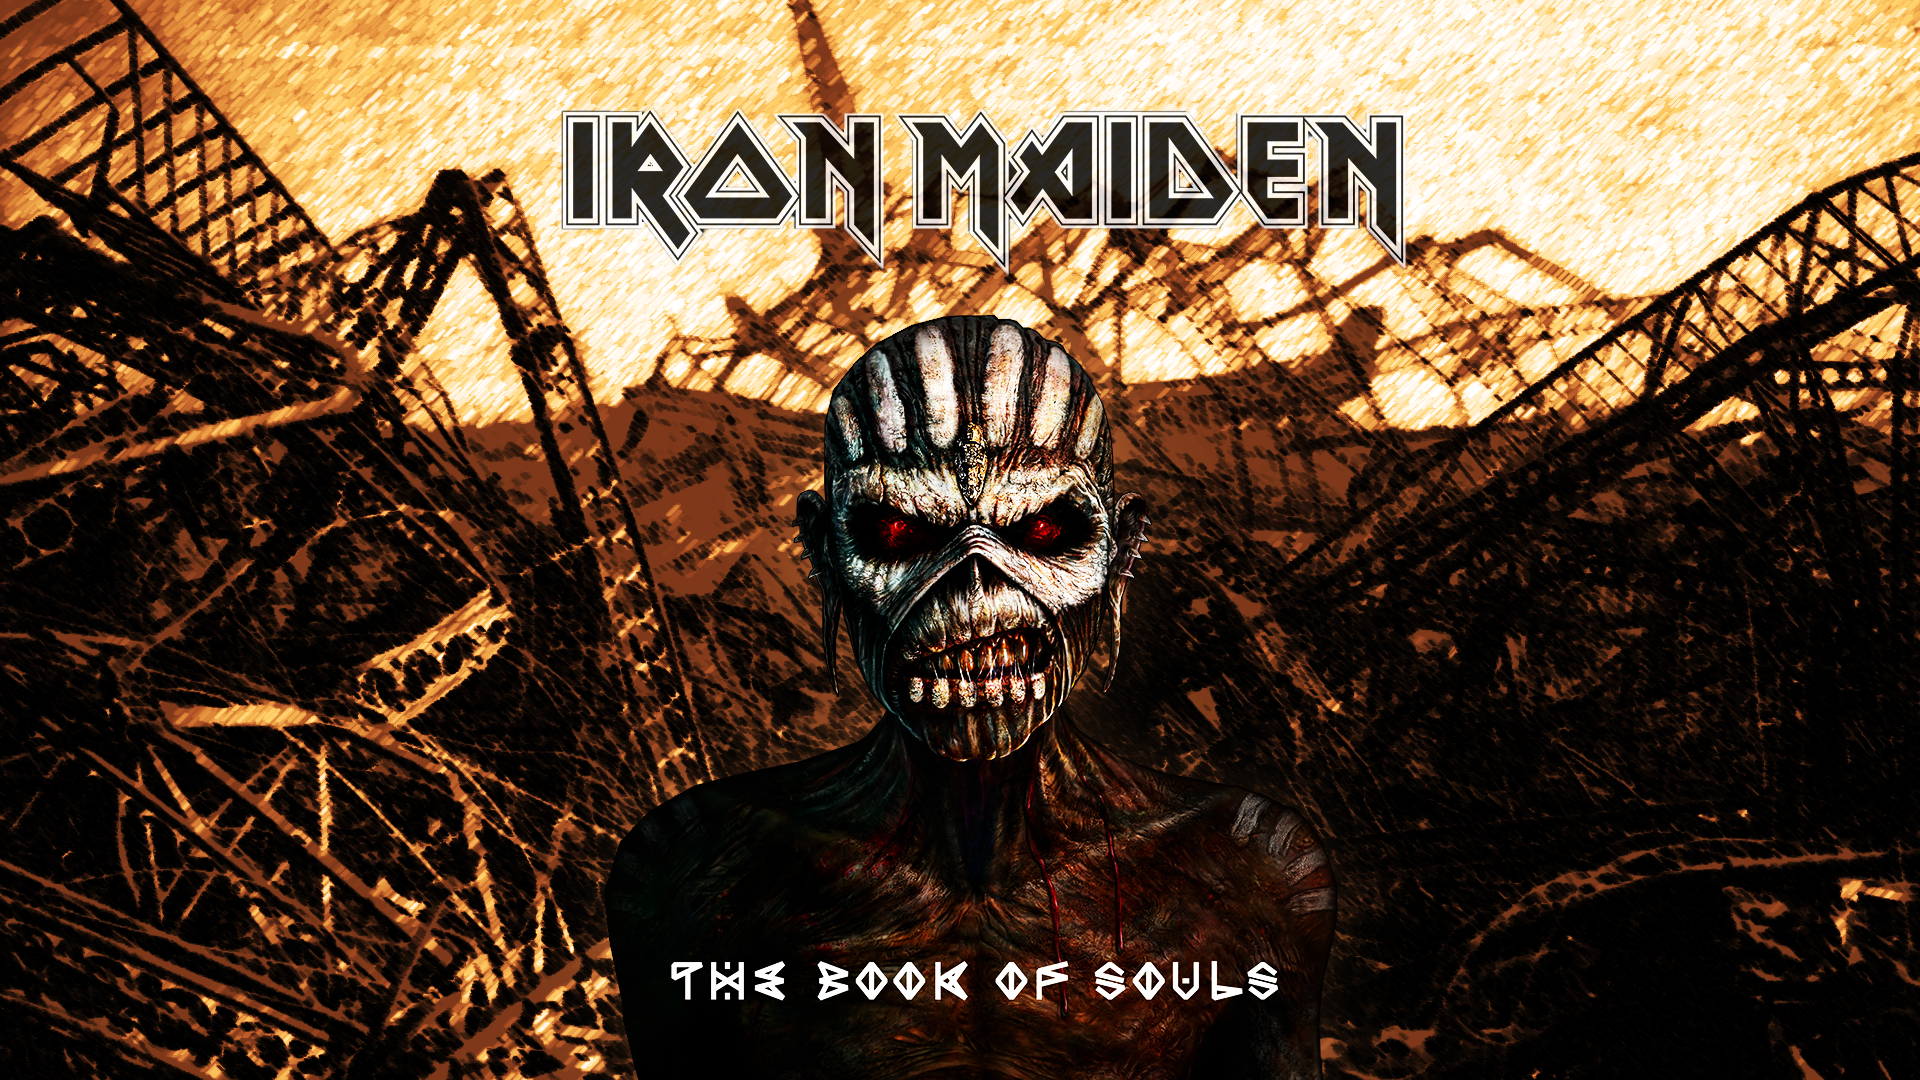 Iron Maiden The Book Of Souls R101 Wallpaper By V3rm1ll10nx D98gc1q Png 1920 1080